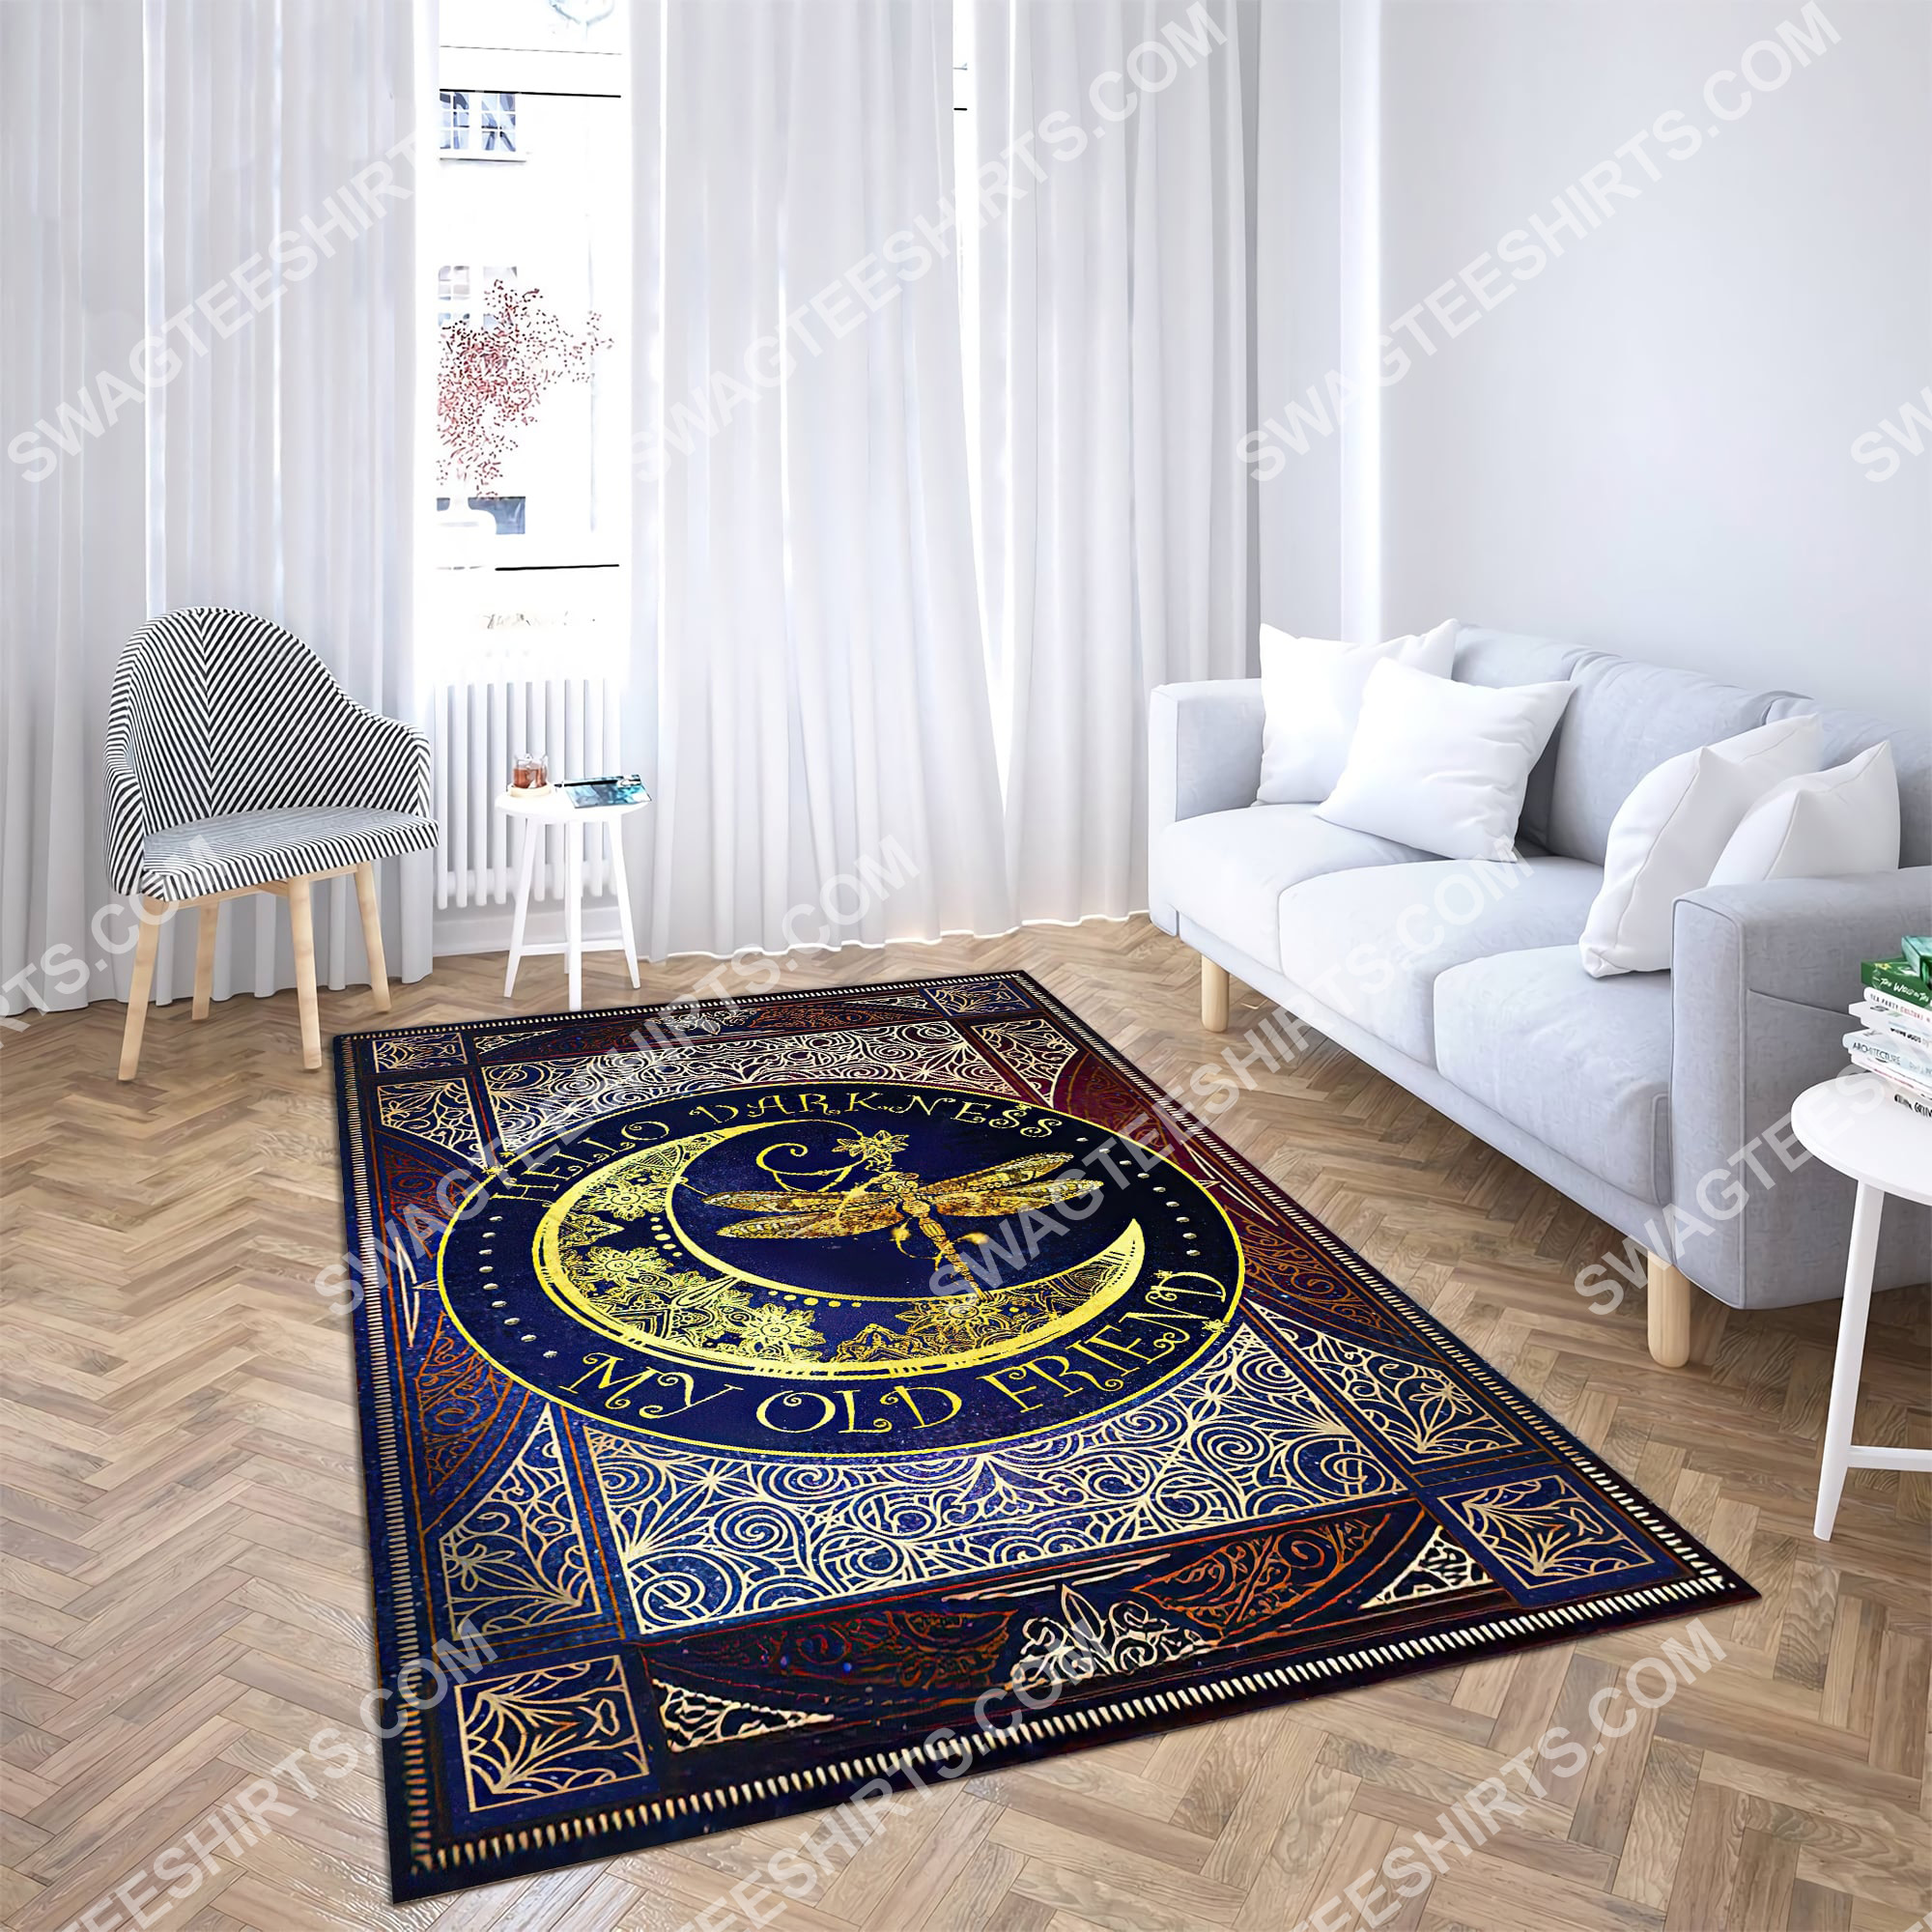 vintage dragonfly sun and moon wicca all over printed rug 3(1)